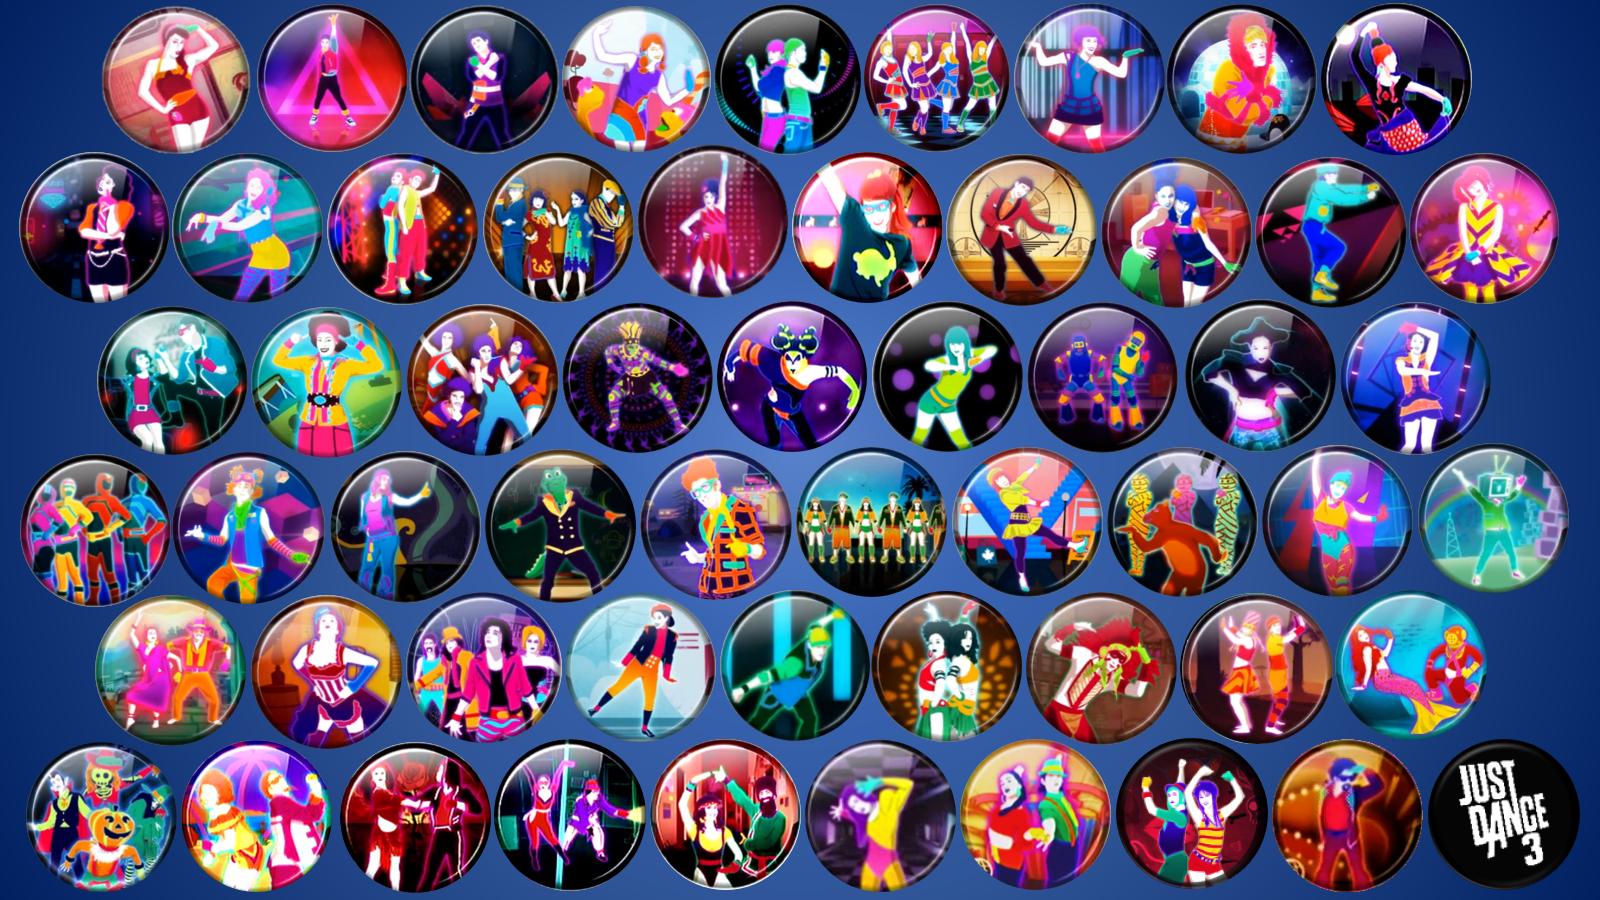 Most Viewed Just Dance 3 Wallpapers 4k Wallpapers